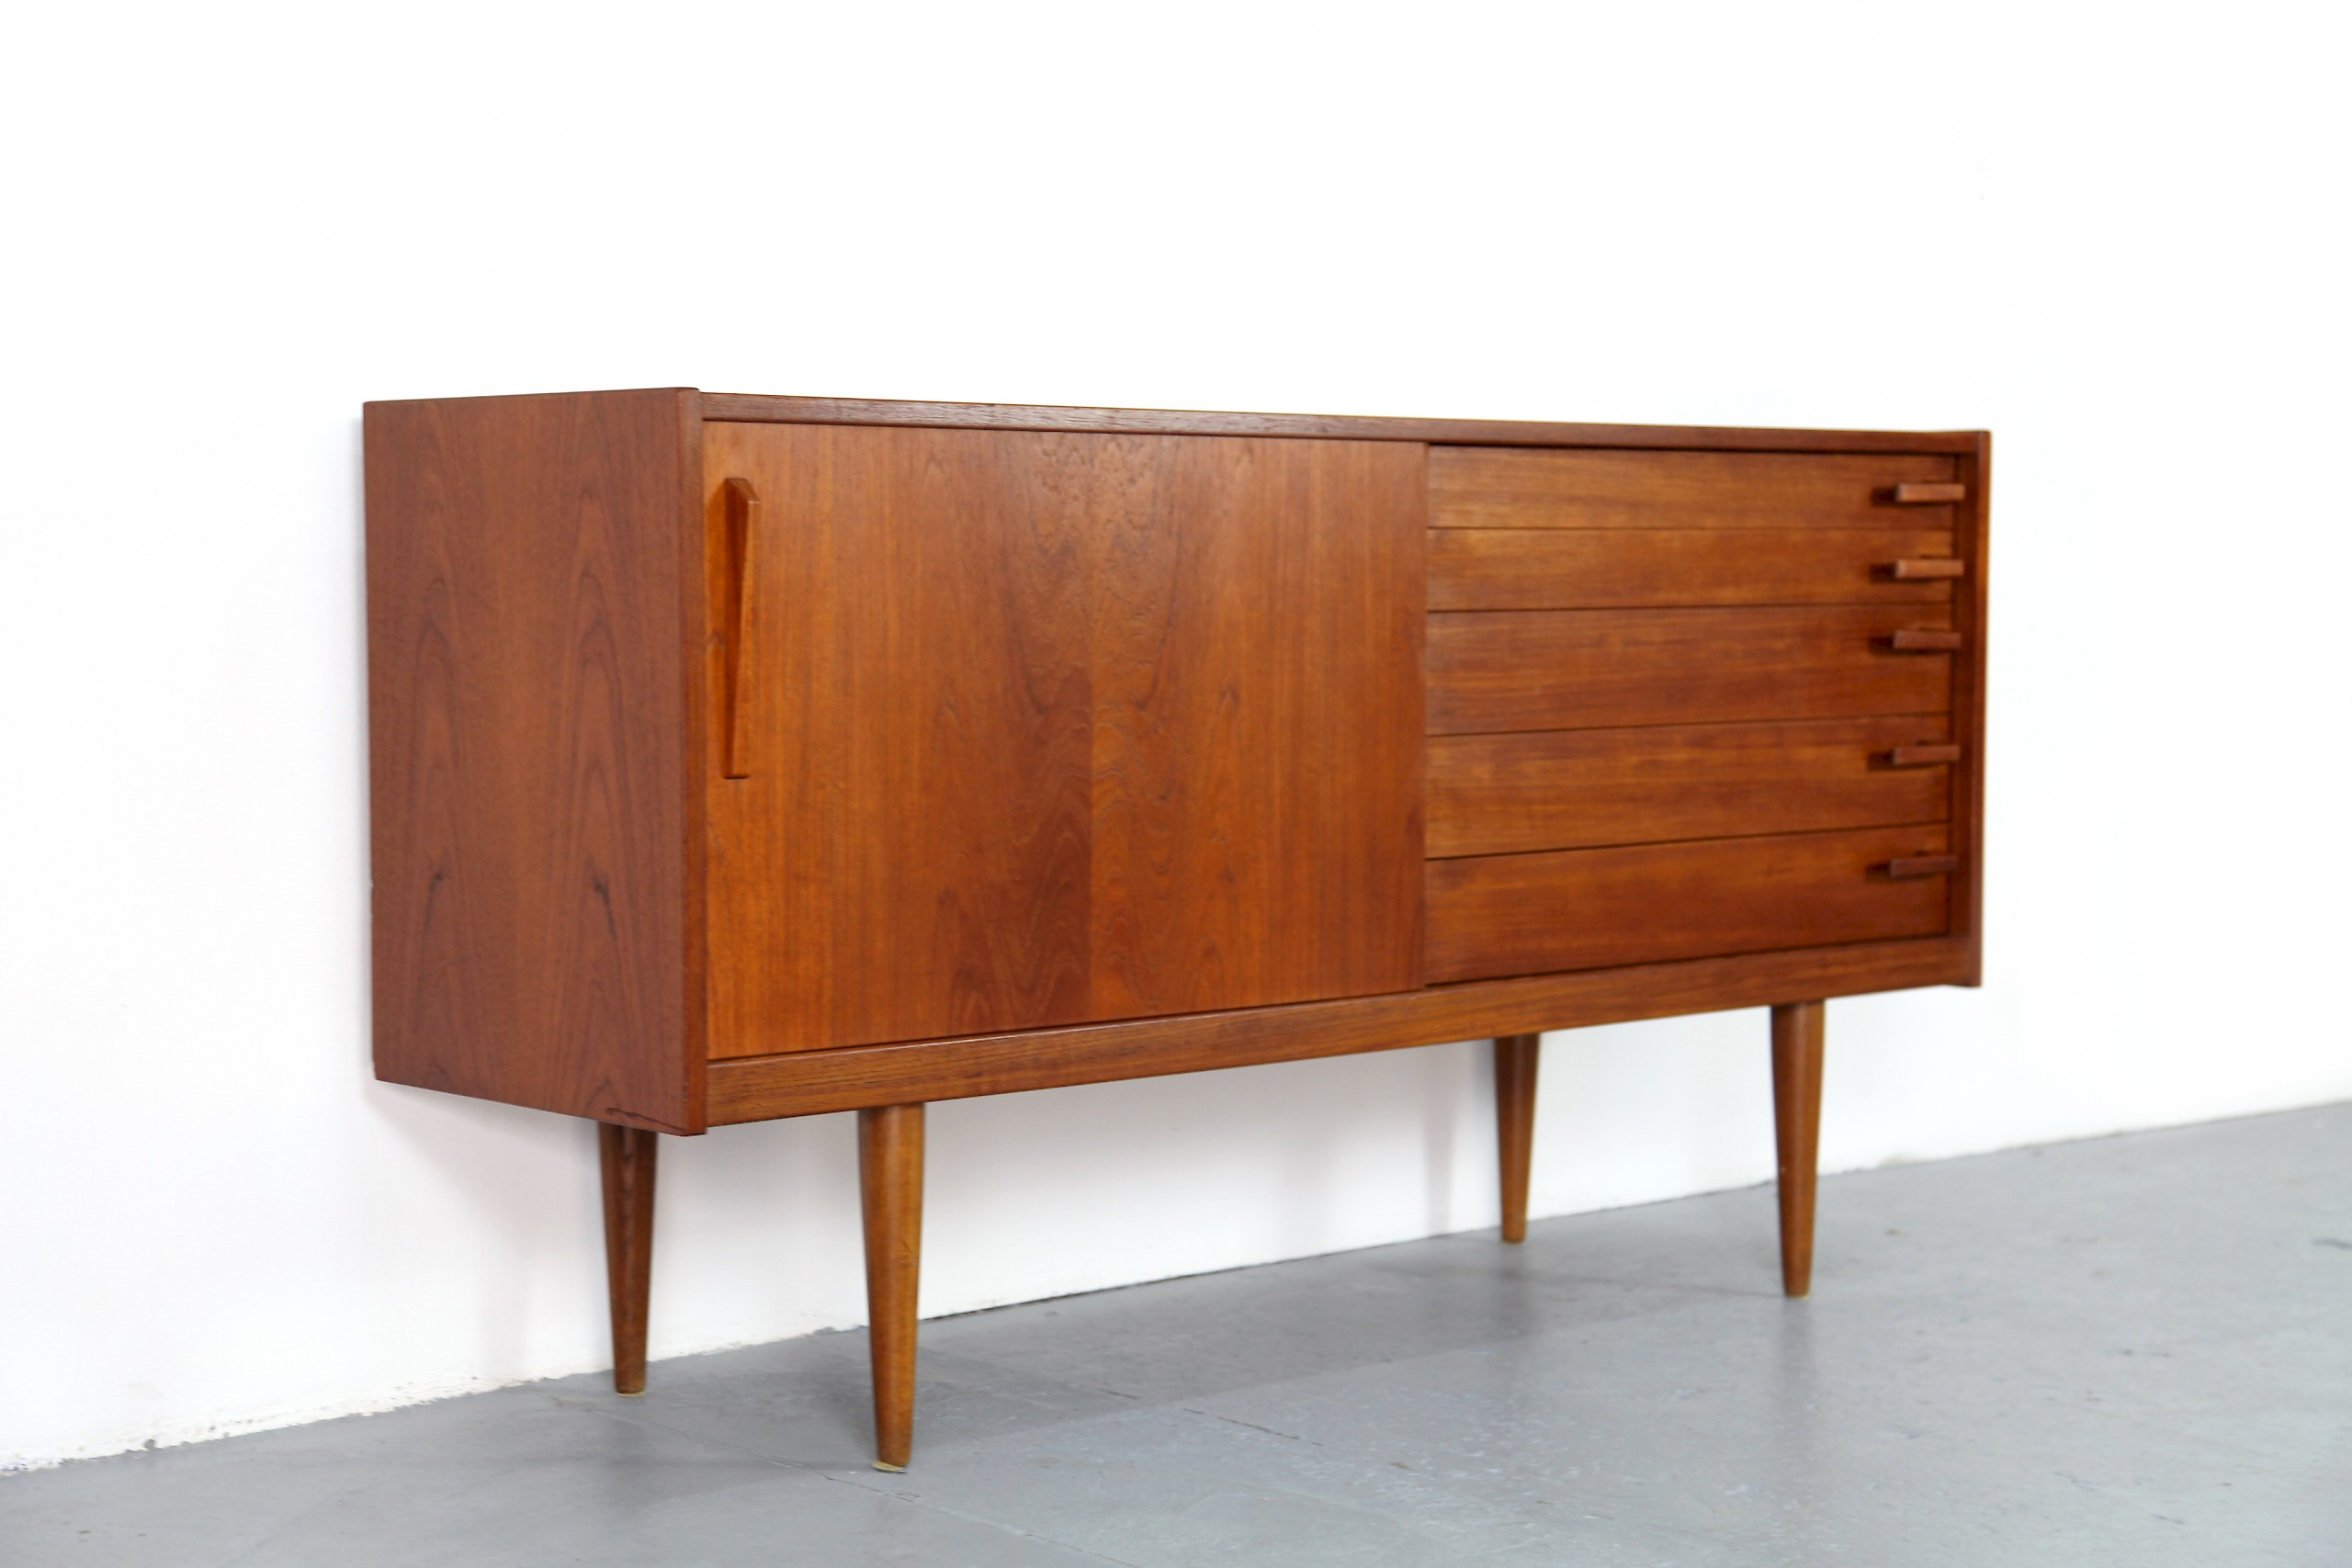 skandinavisches teakholz sideboard von yngve ekstr m 1956 58 adore modern. Black Bedroom Furniture Sets. Home Design Ideas